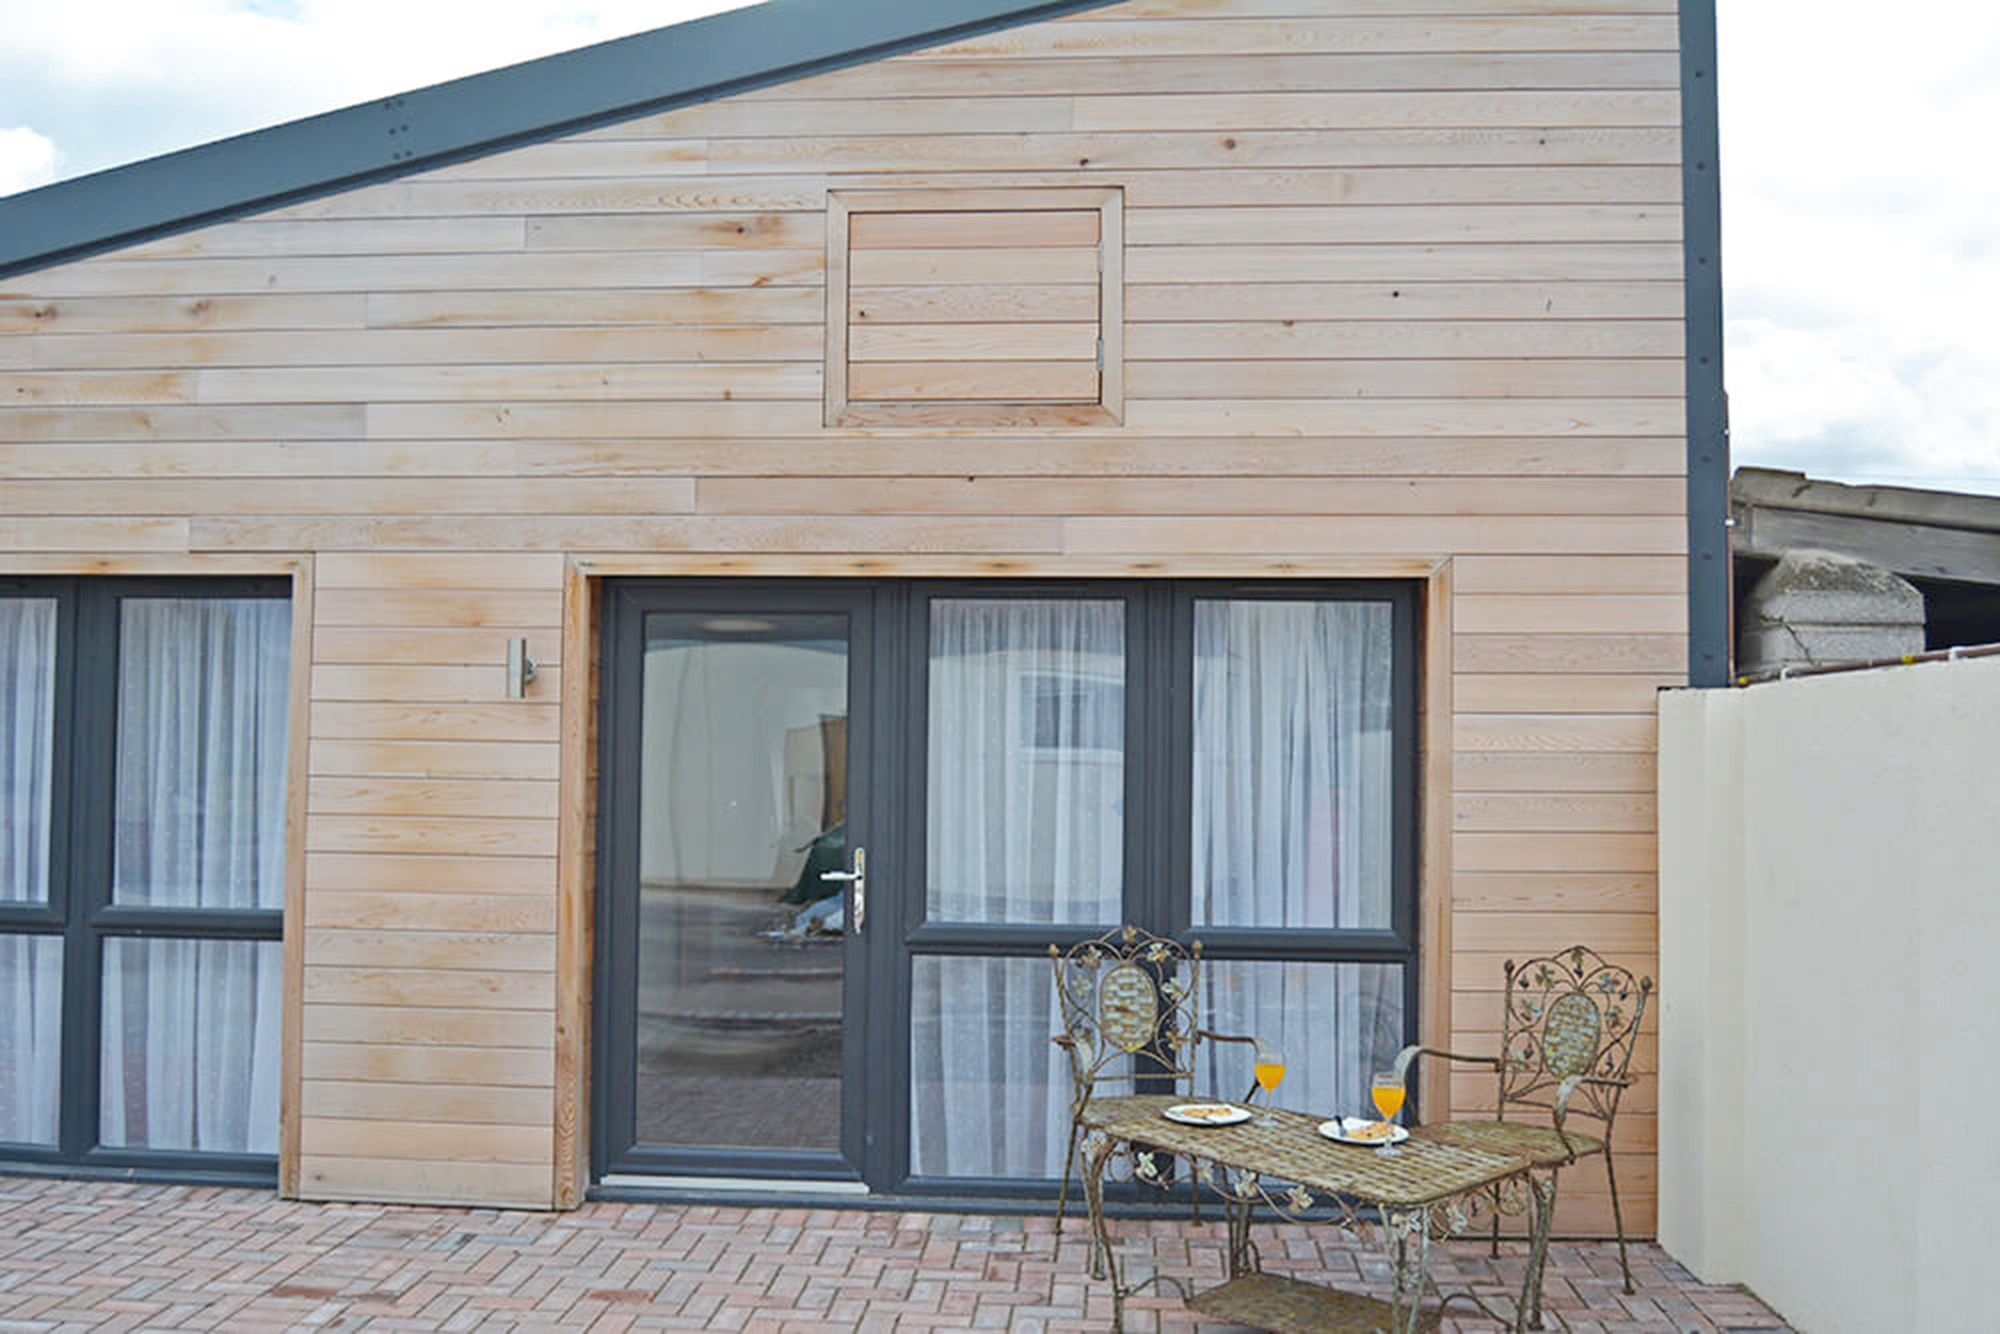 Greenside Cottage is a light and bright contemporary semi-detached cottage